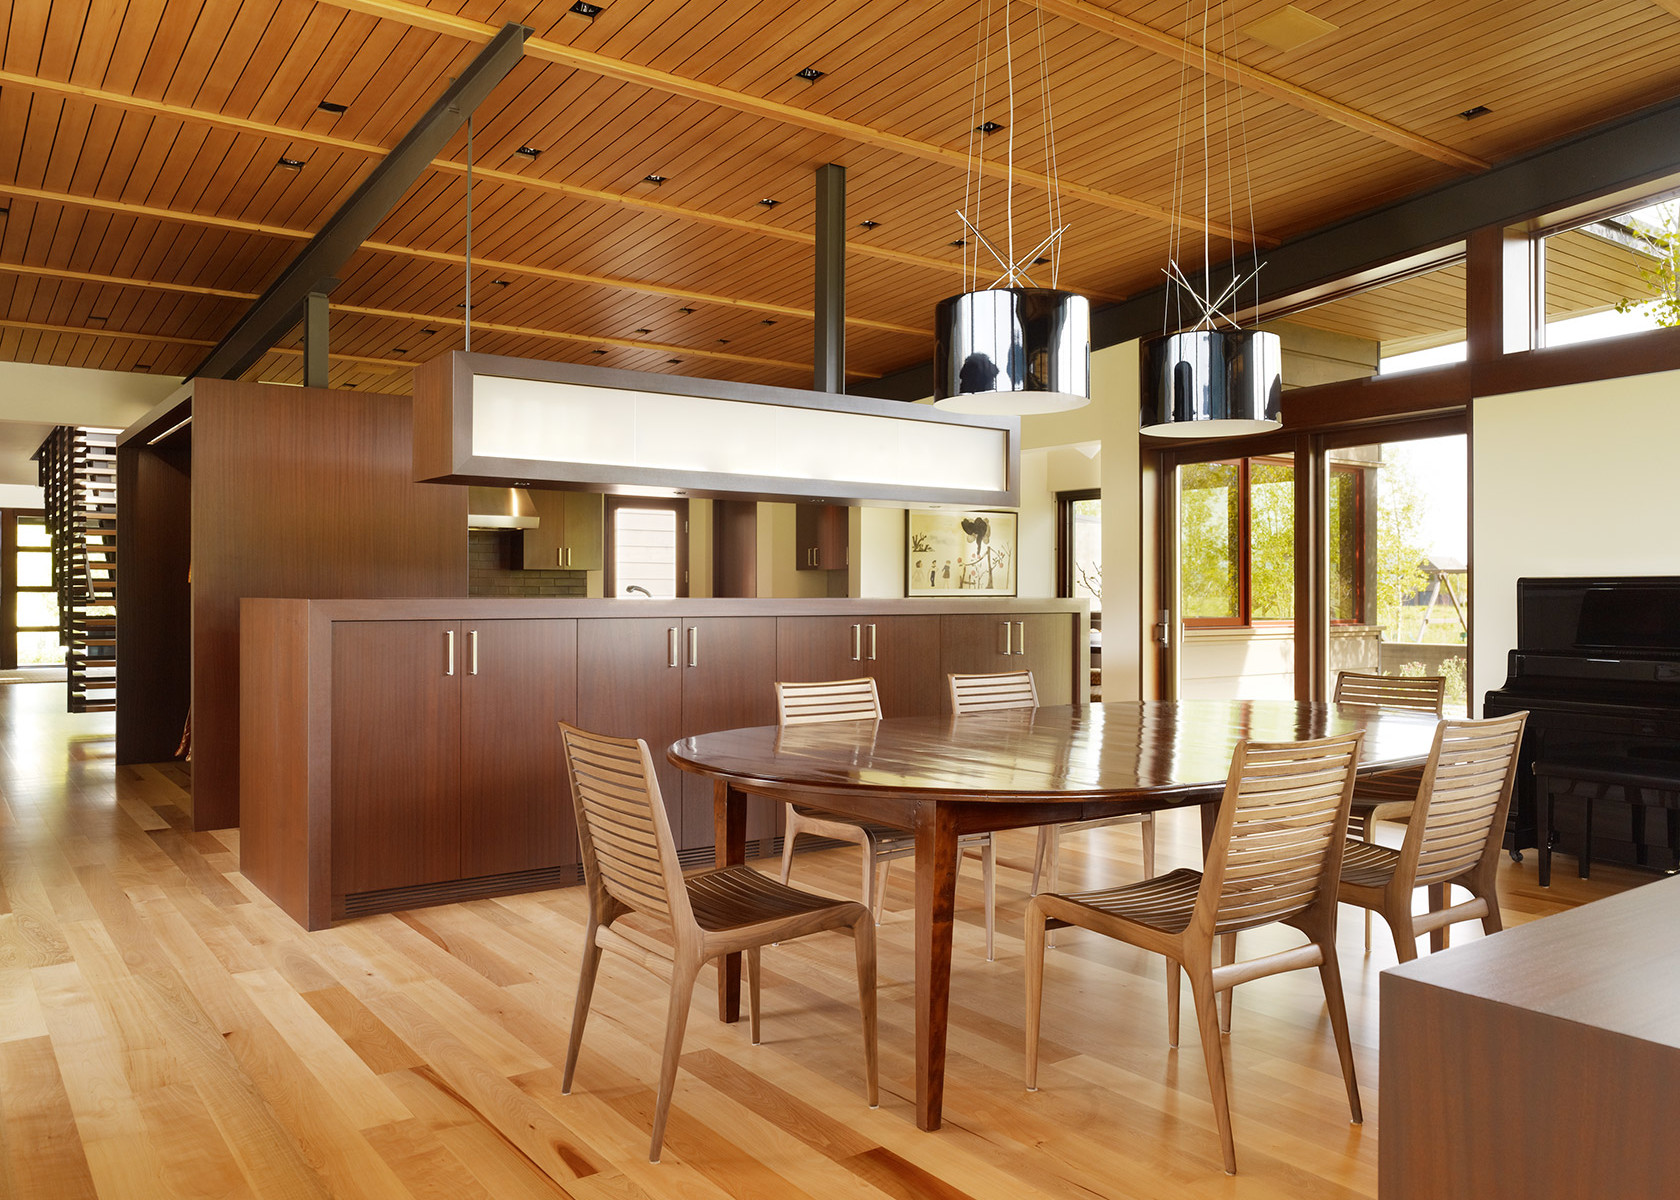 Top 15 Best Wooden Ceiling Design Ideas. Nice light dining room in the studio first floor of the mansion